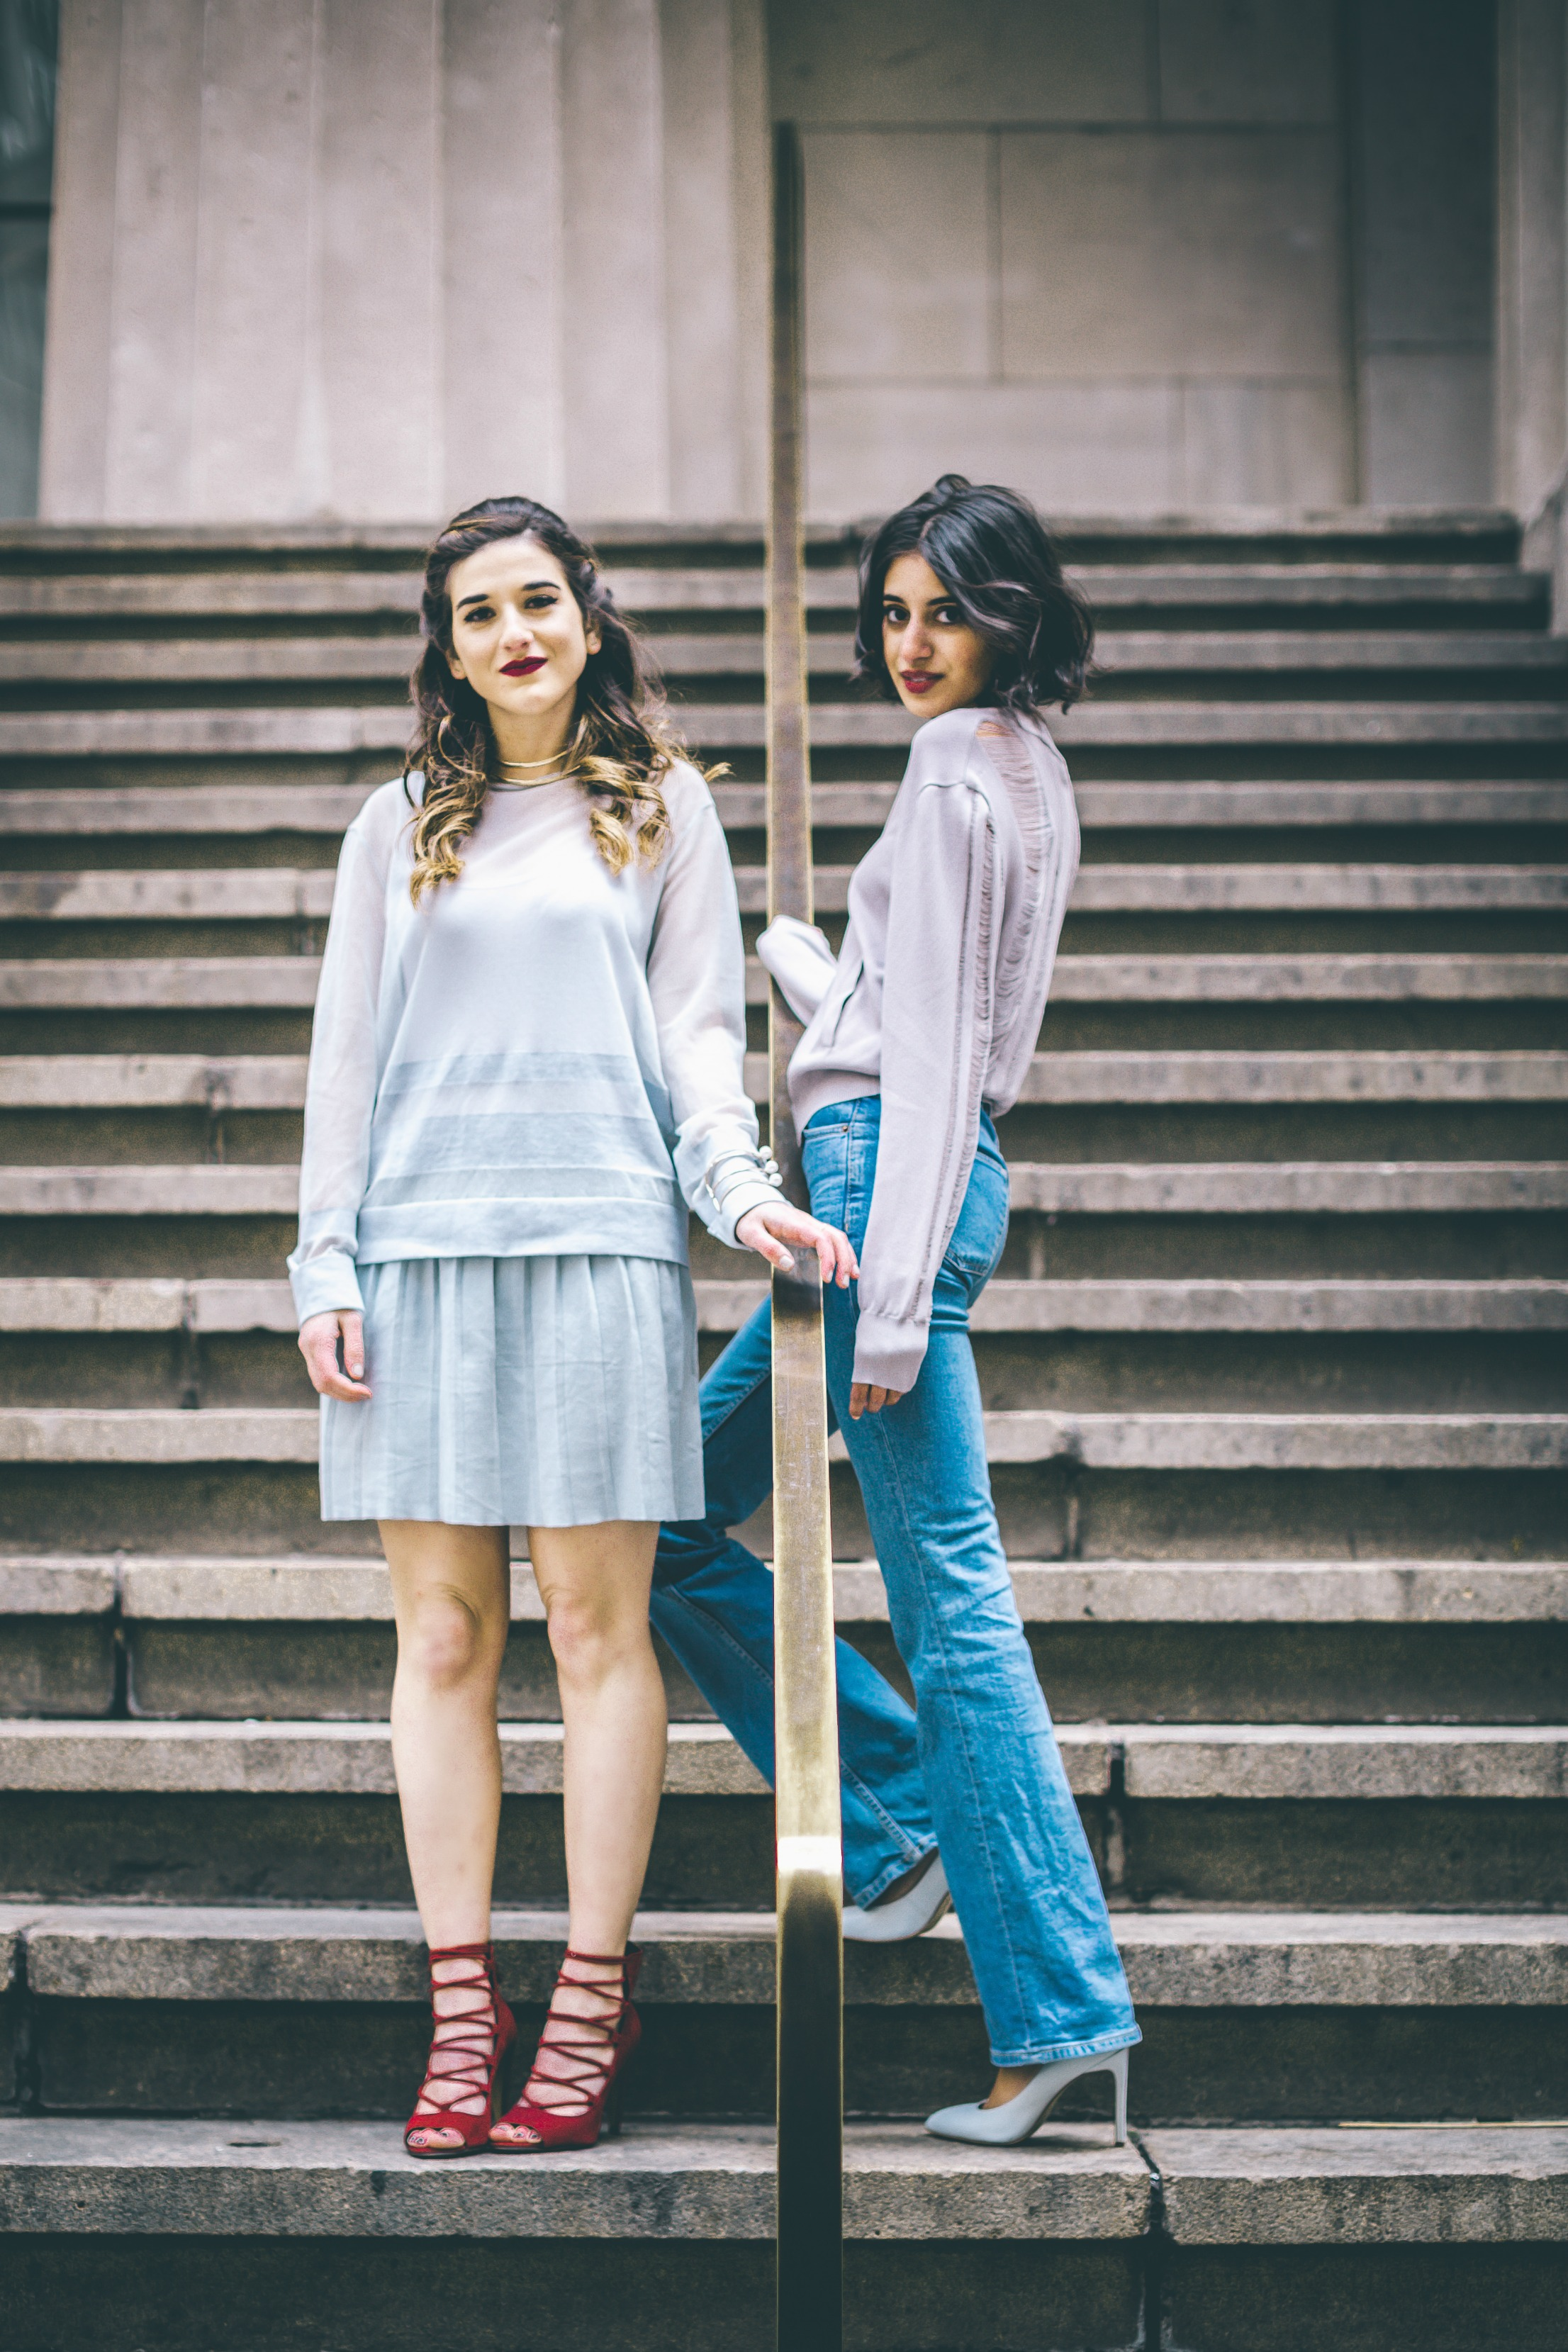 Louboutins & Love x Our Second Skin Photoshoot Collab Esther Santer NYC Street Style Fashion Blogger Anaa Saber Girls Women Matthew Pastula Photography Gold Jewelry Models Collar Necklace Monochrome Sheer Top Blue Skirt French Connection Lace-Up Heels.jpg